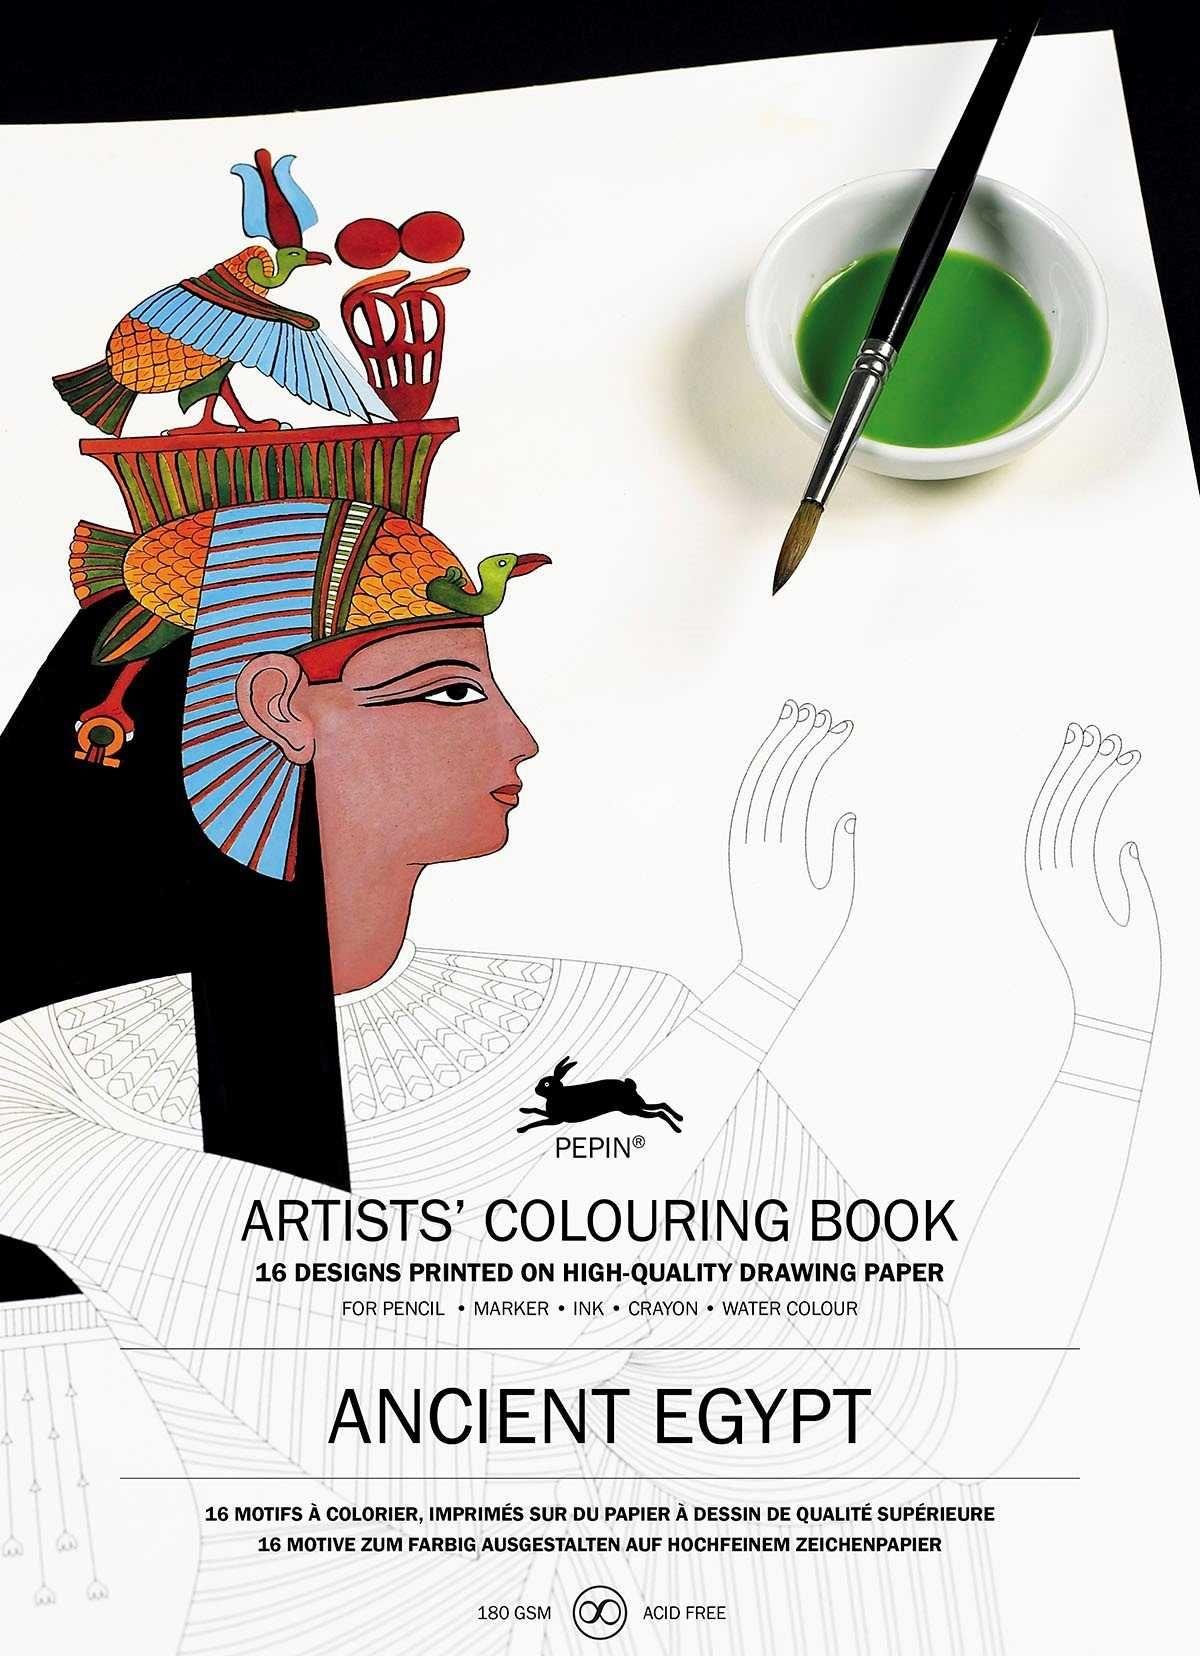 ANCIENT EGYPT ARTISTS' COLOURING BOOK